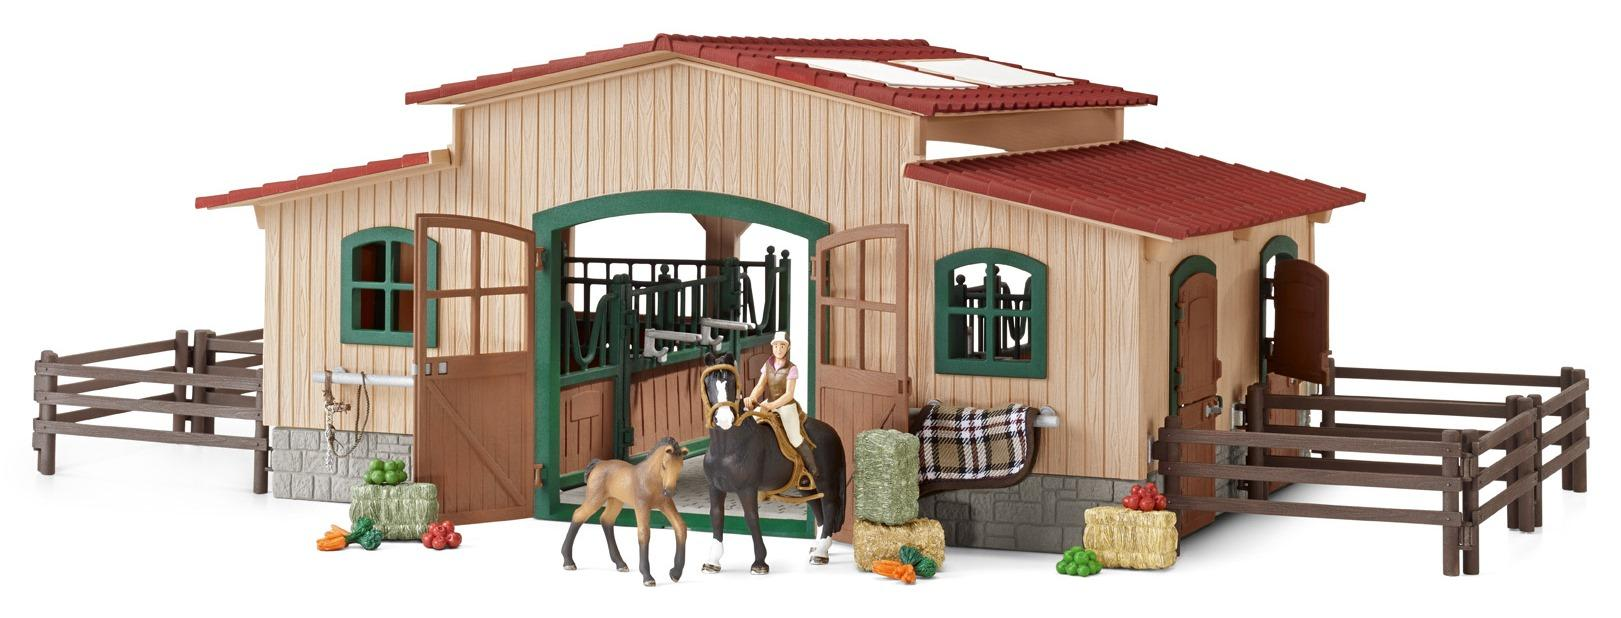 schleich horse stable with accessories figures amazon. Black Bedroom Furniture Sets. Home Design Ideas